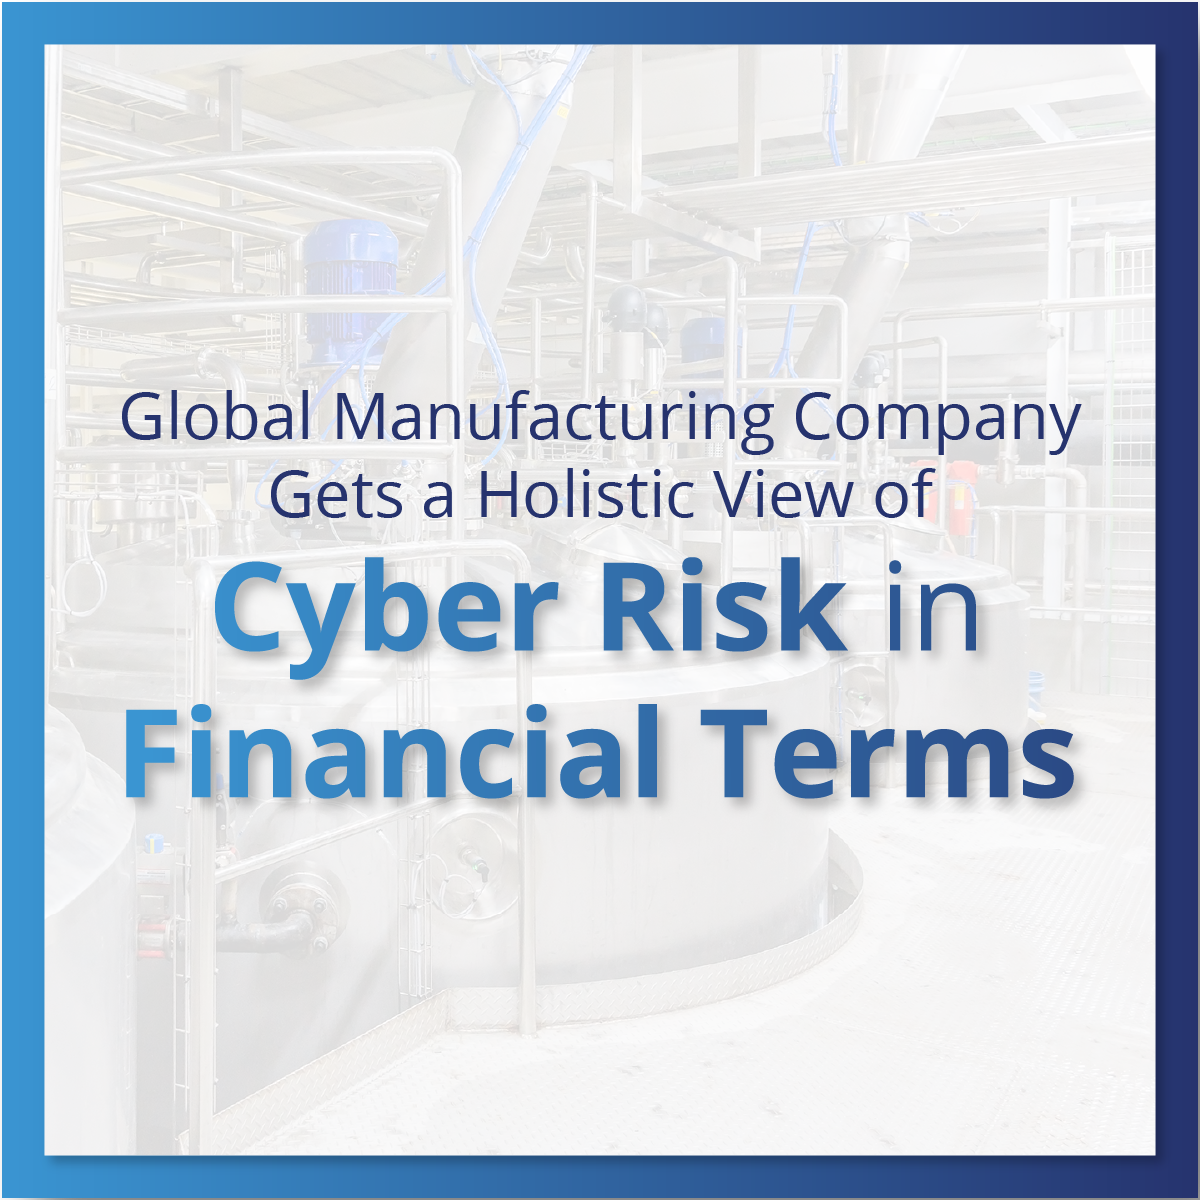 Global Manufacturing Company Gets a Holistic View of Cyber Risk in Financial Terms